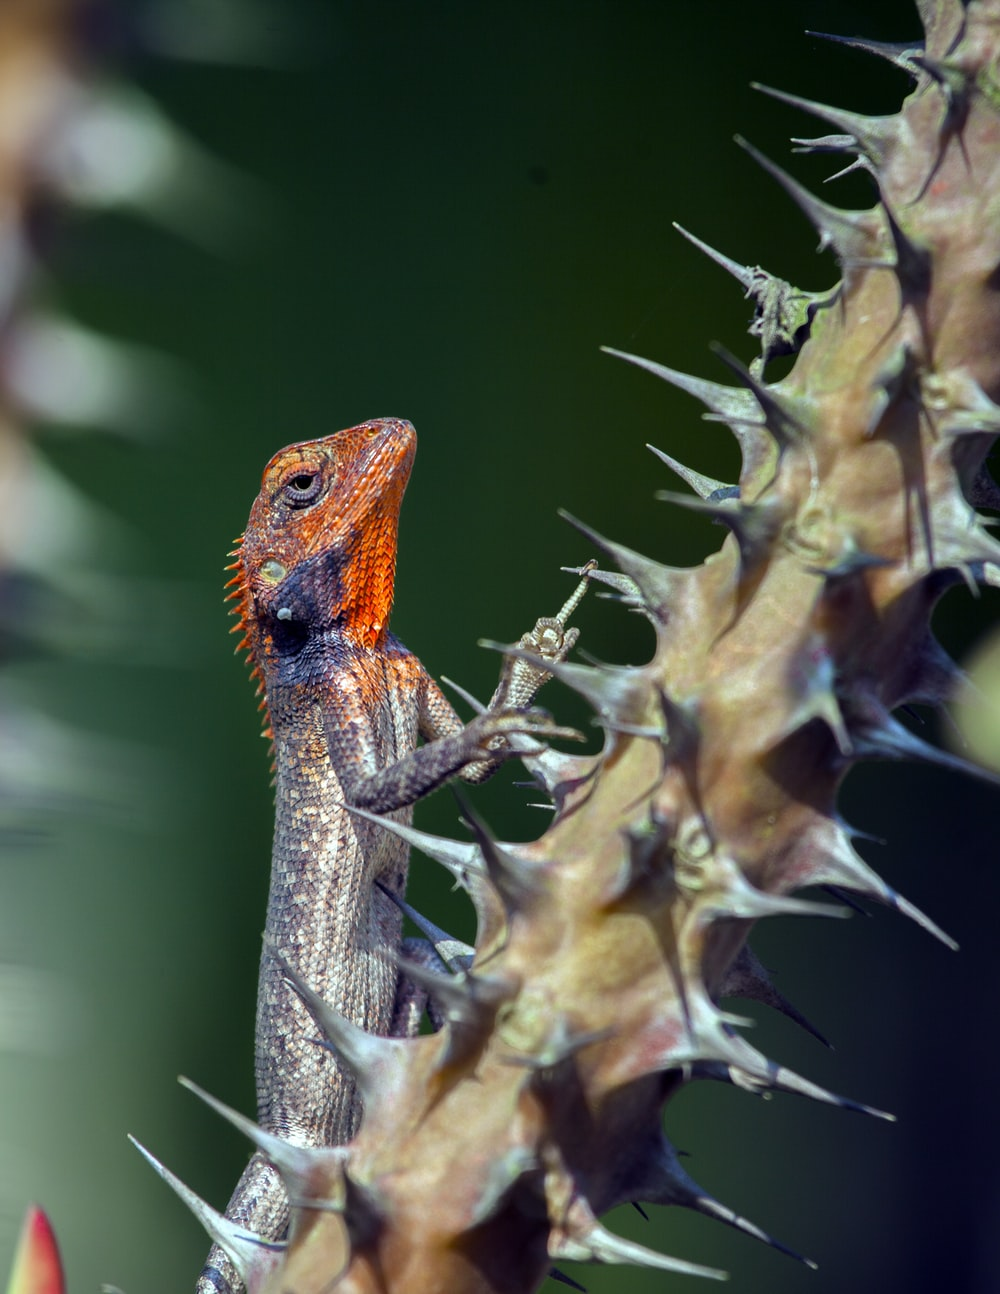 orange and brown lizard on brown dried plant